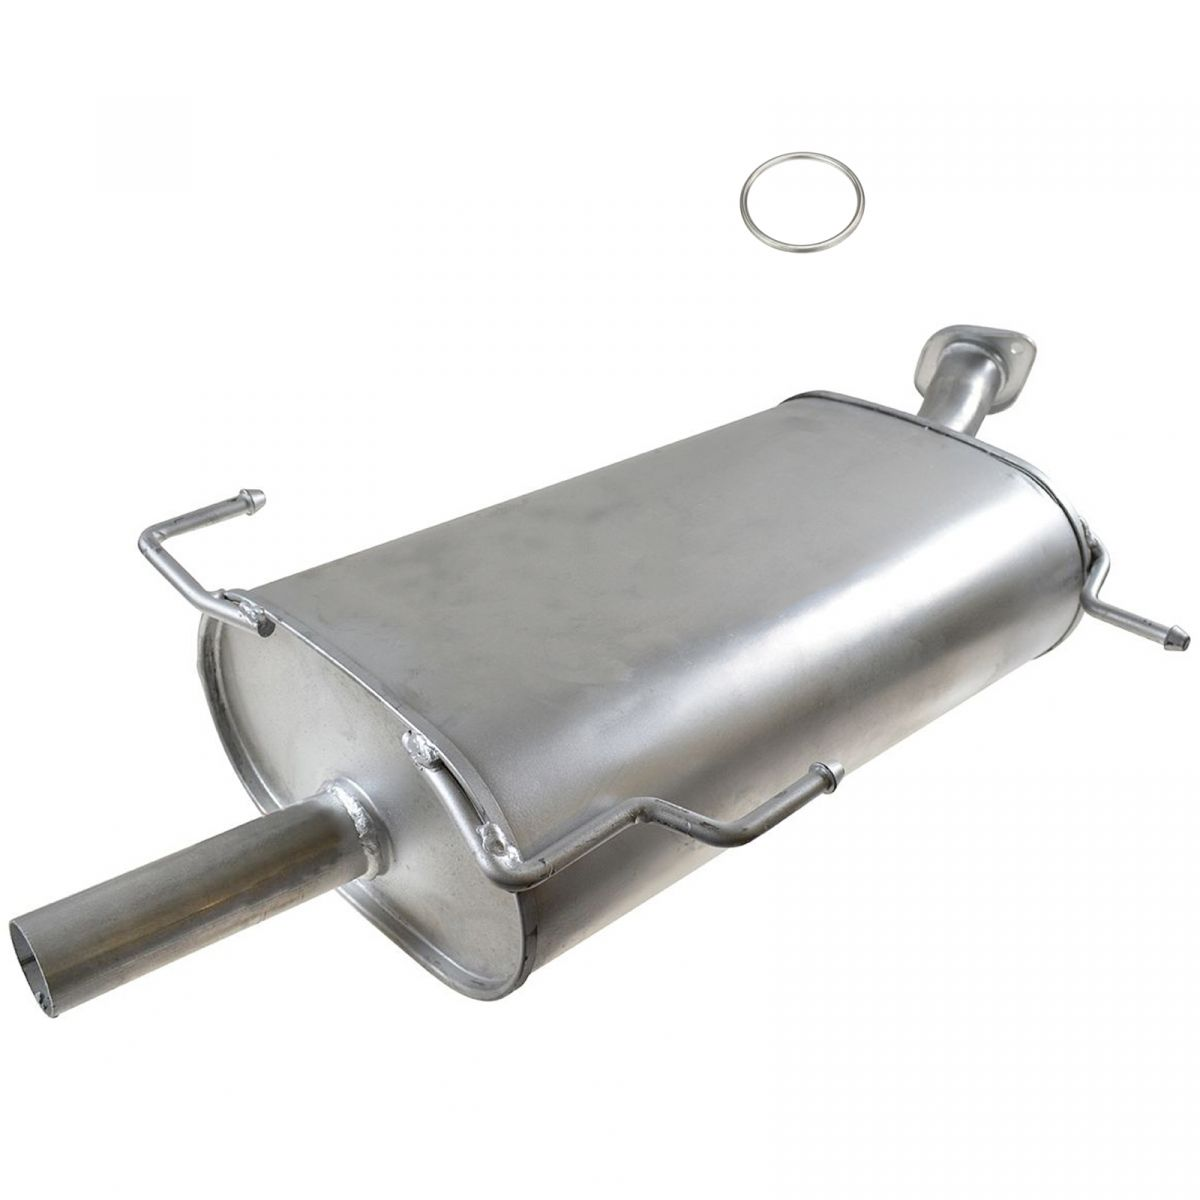 hight resolution of rear exhaust muffler section with gasket new for i30 maxima v6 3 0l